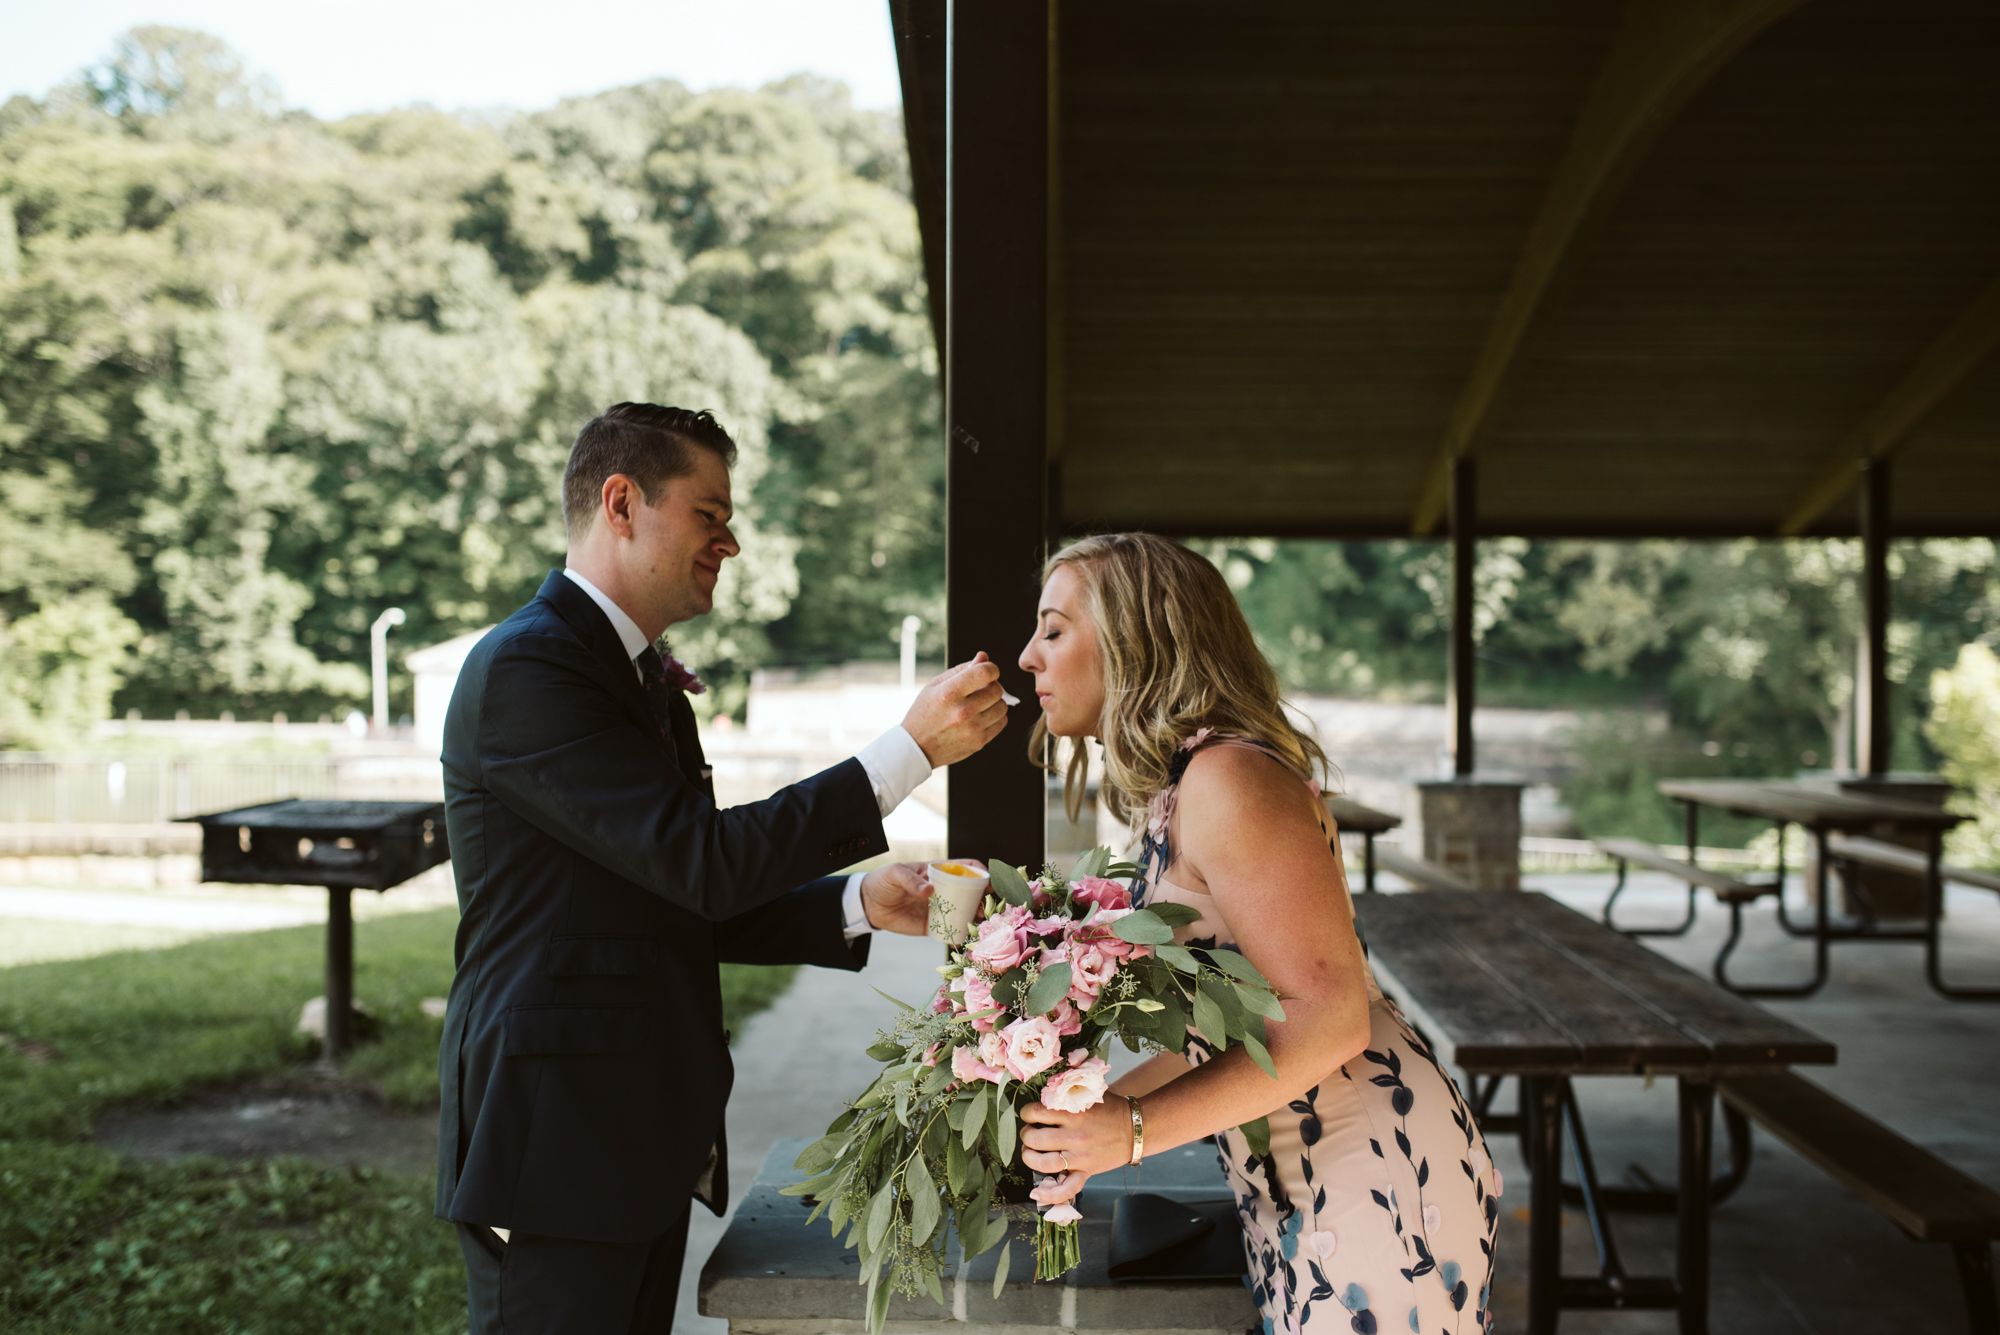 Pop-up Ceremony, Outdoor Wedding, Casual, Simple, Lake Roland, Baltimore, Maryland Wedding Photographer, Laid Back, DIY, Groom Feeding Bride Ice Cream